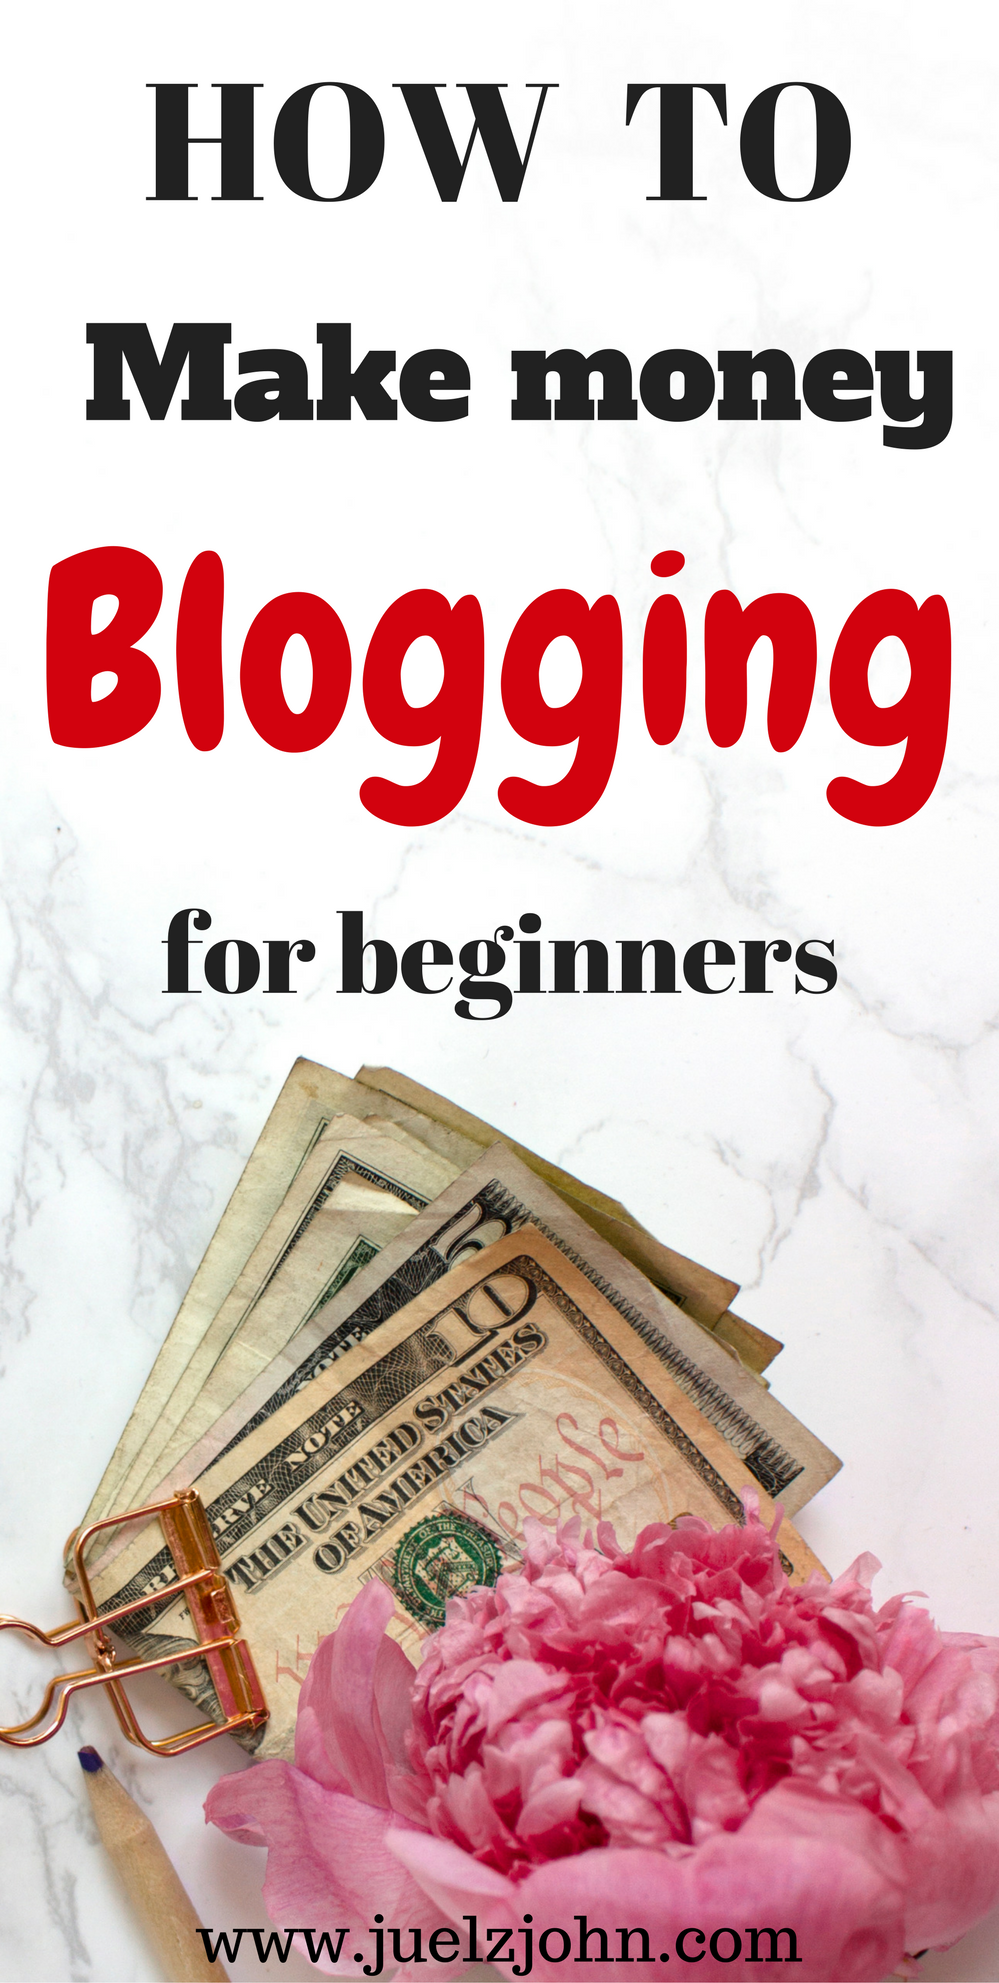 5 ways to make money blogging with a new blog www.juelzjohn.com